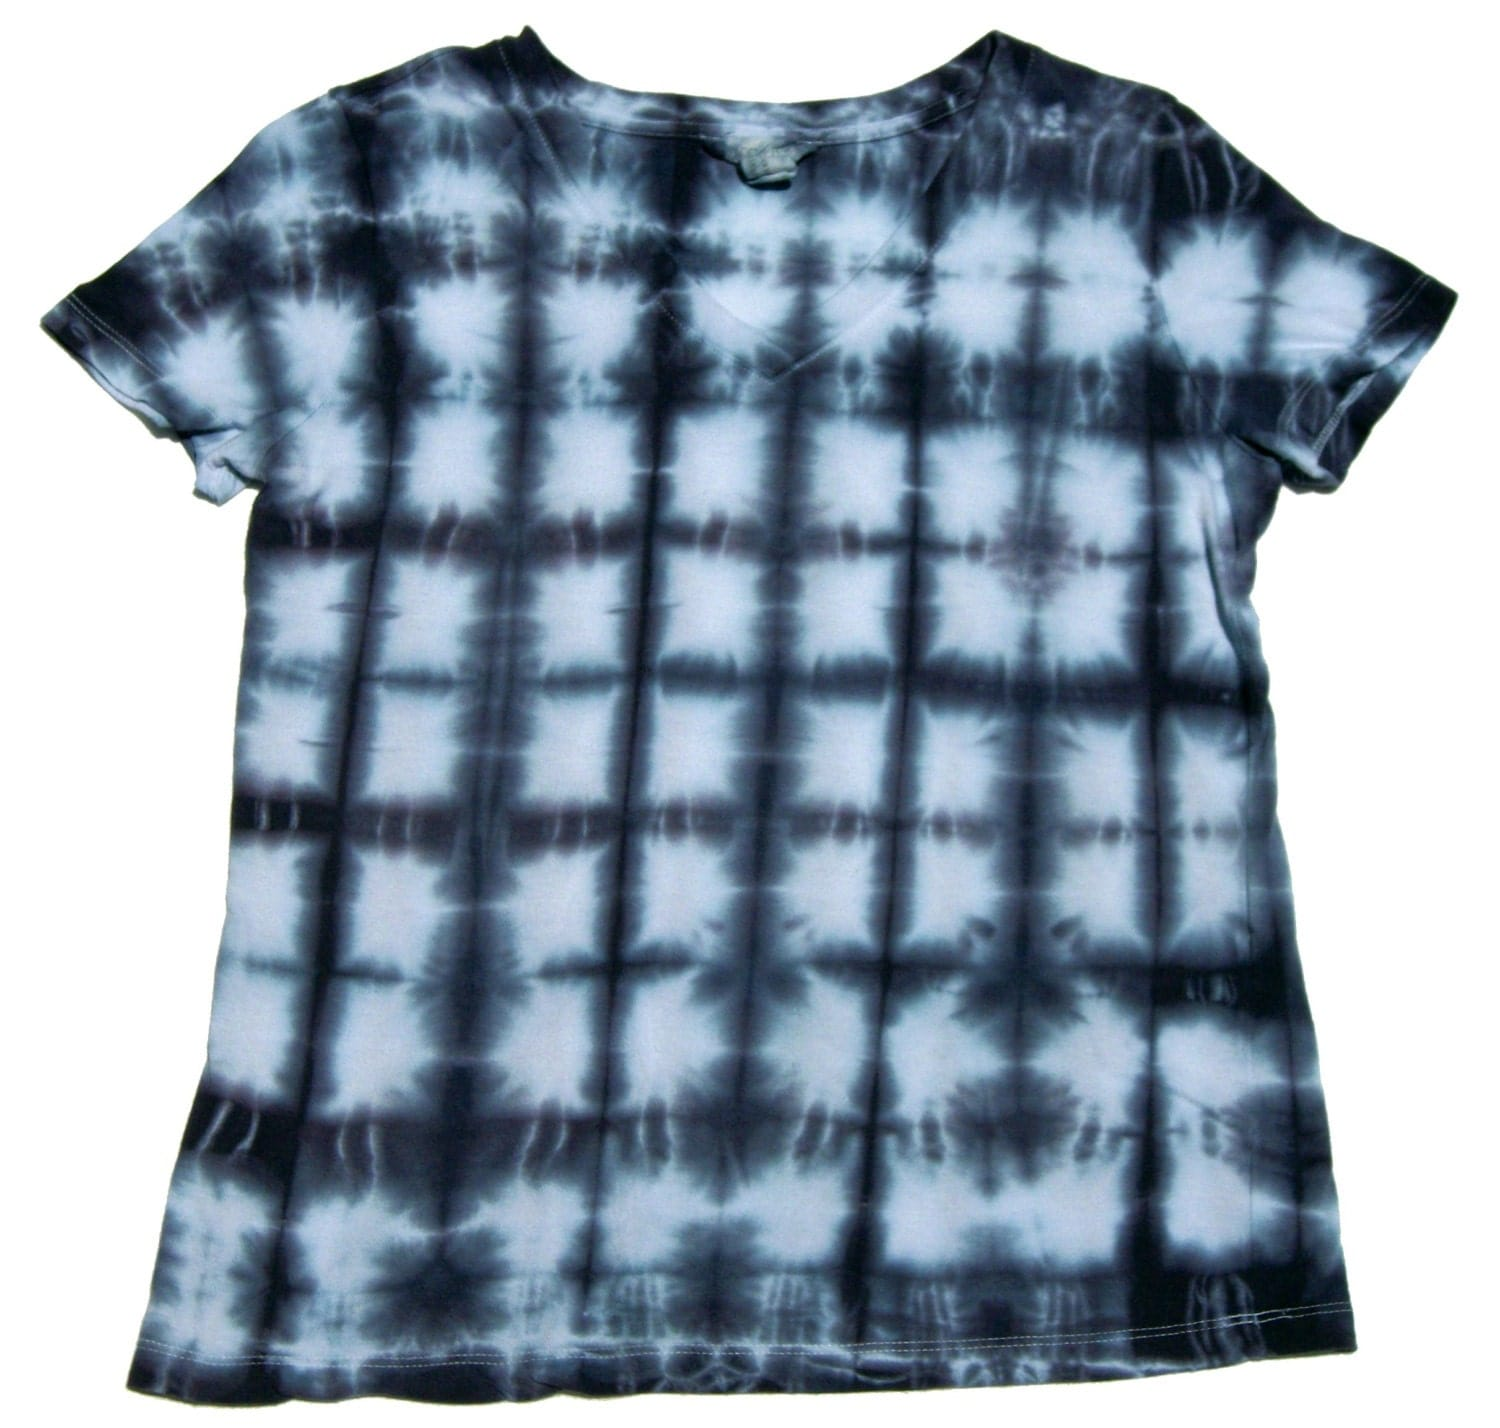 Tie dye shibori t shirt short sleeve women 39 s by for Nike tie dye shirt and shorts